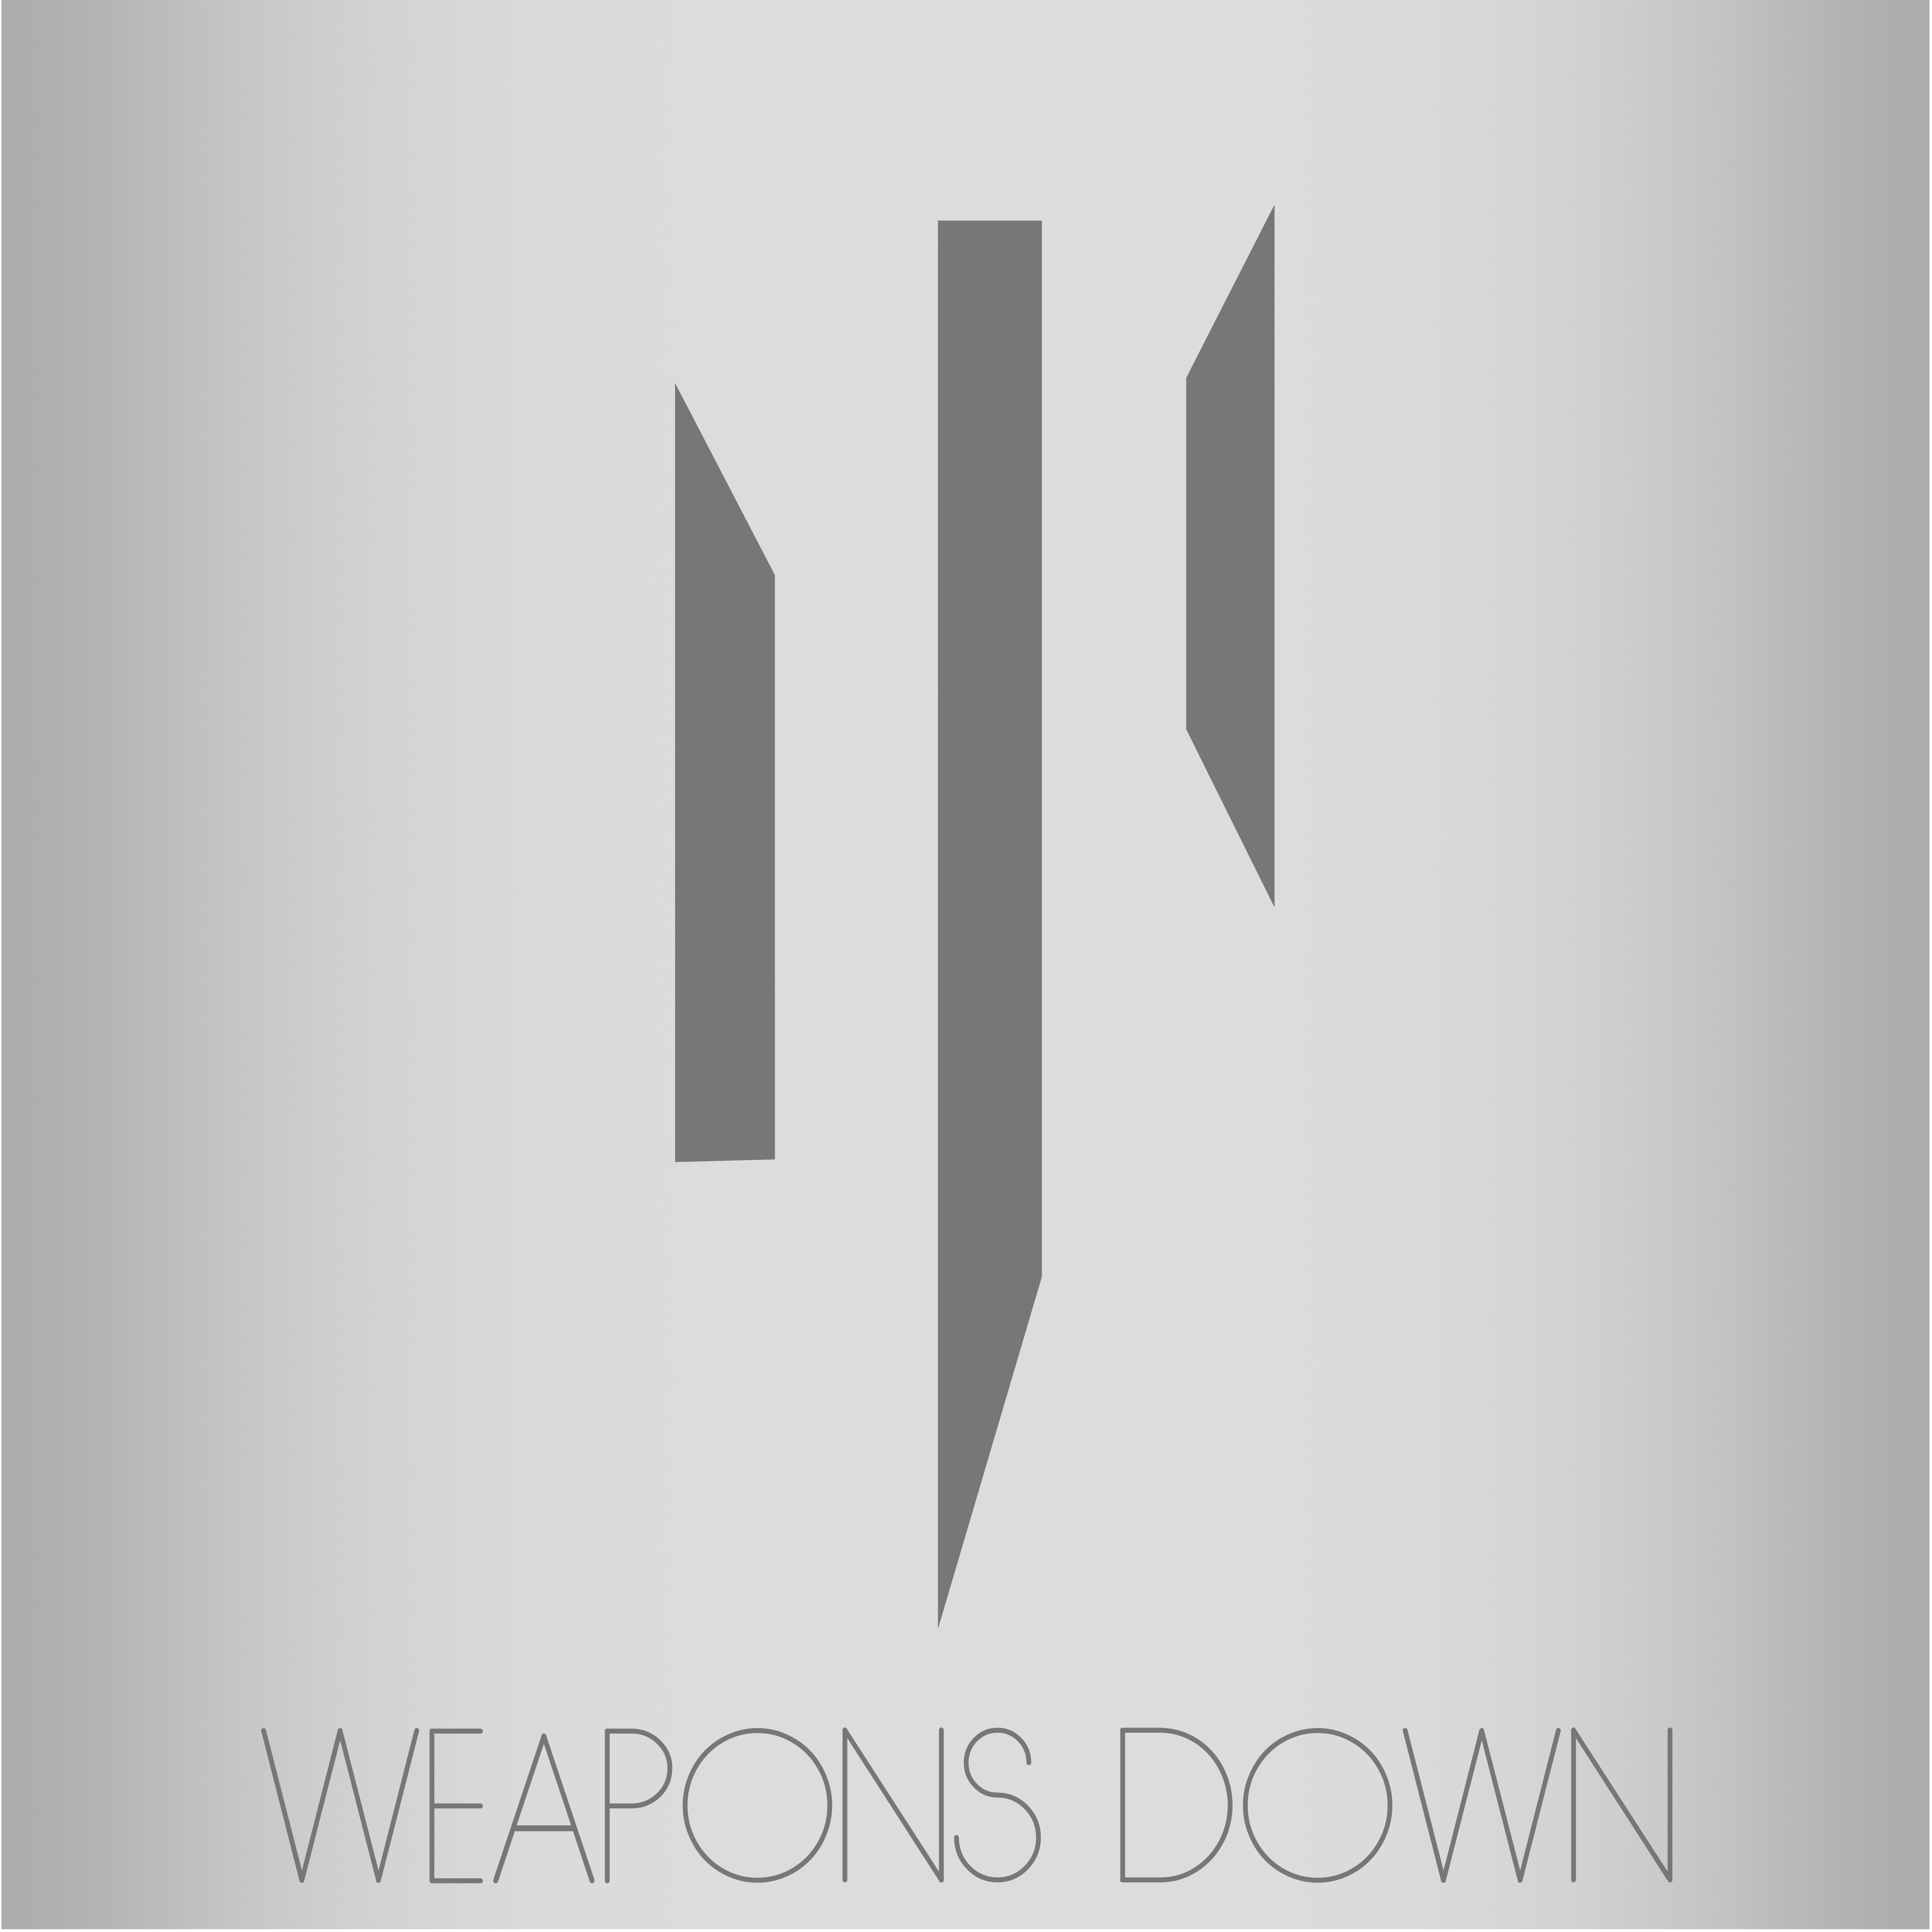 Weapons Down Graphic